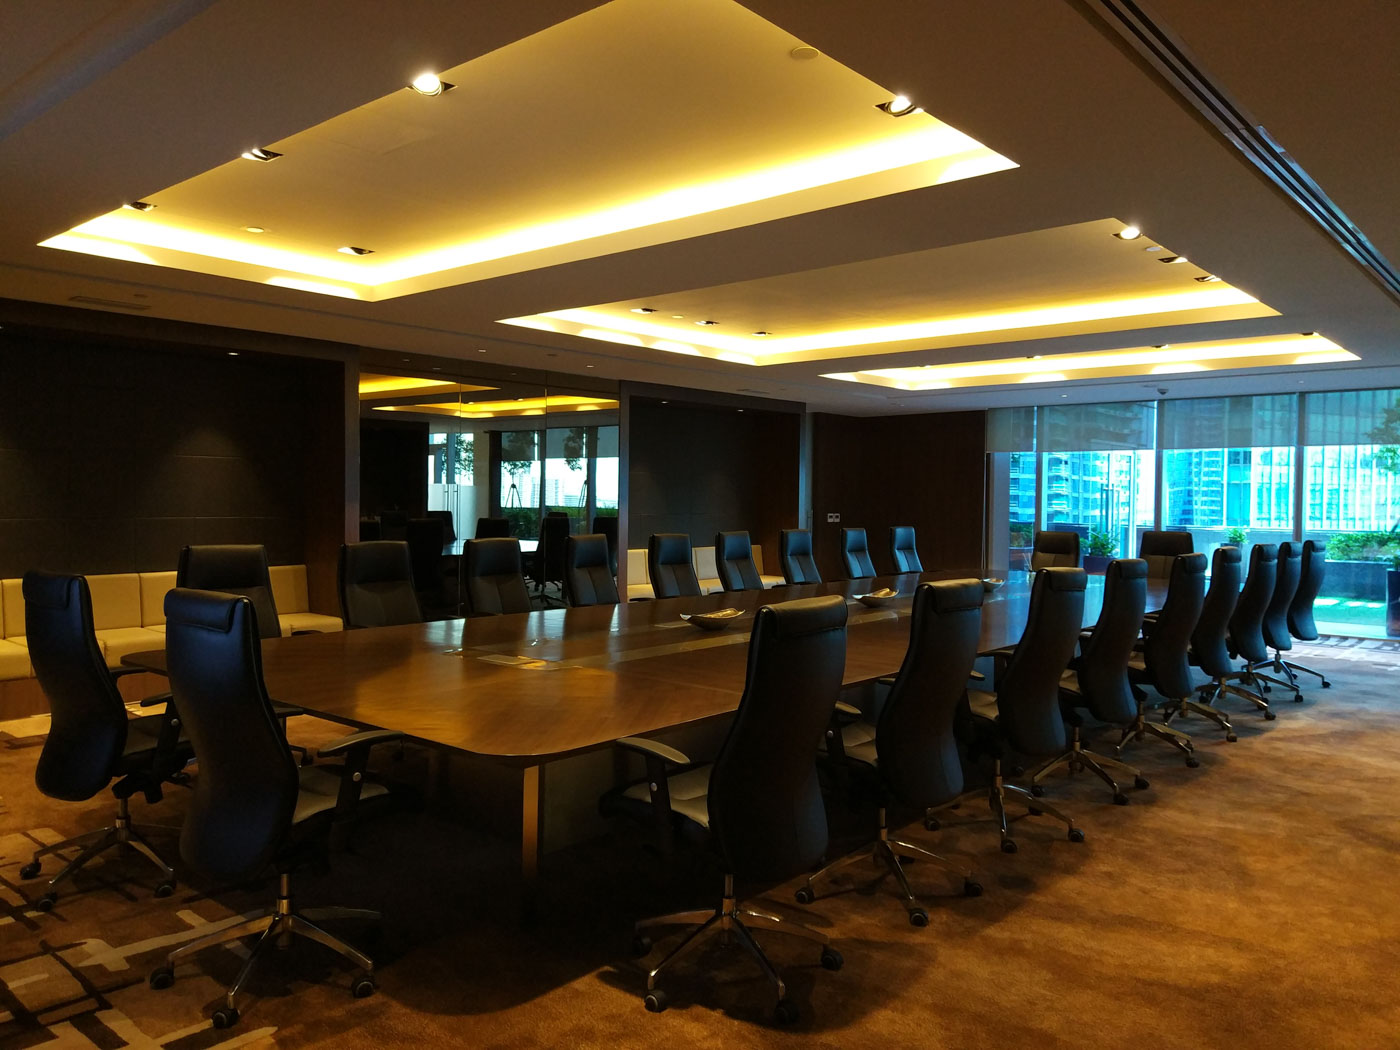 SEAT OF POWER. The tower will also serve as the home base for Alliance Global's directors, including chairman Andrew Tan. Pictured here is the executive boardroom that can accommodate up to 55 people. Photo by Chris Schnabel/Rappler